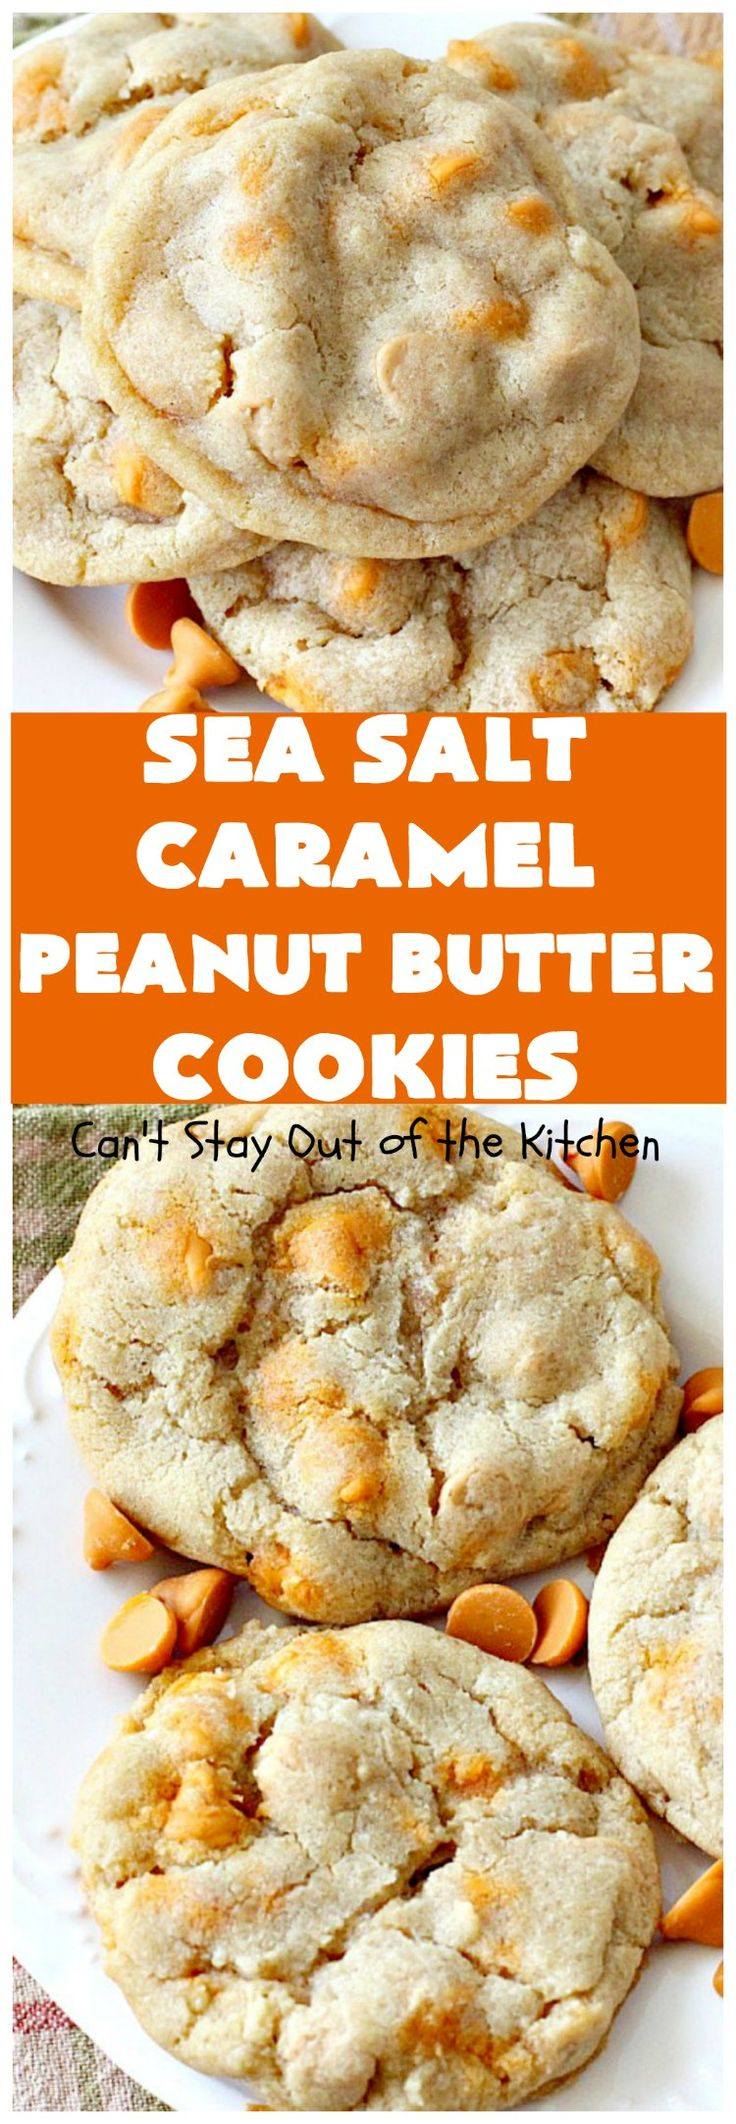 Sea Salt Caramel Peanut Butter Cookies - use both Reese's peanut butter chips and salted caramel chips in a delicious copycat recipe for Mrs. Field's chocolate chip cookies.